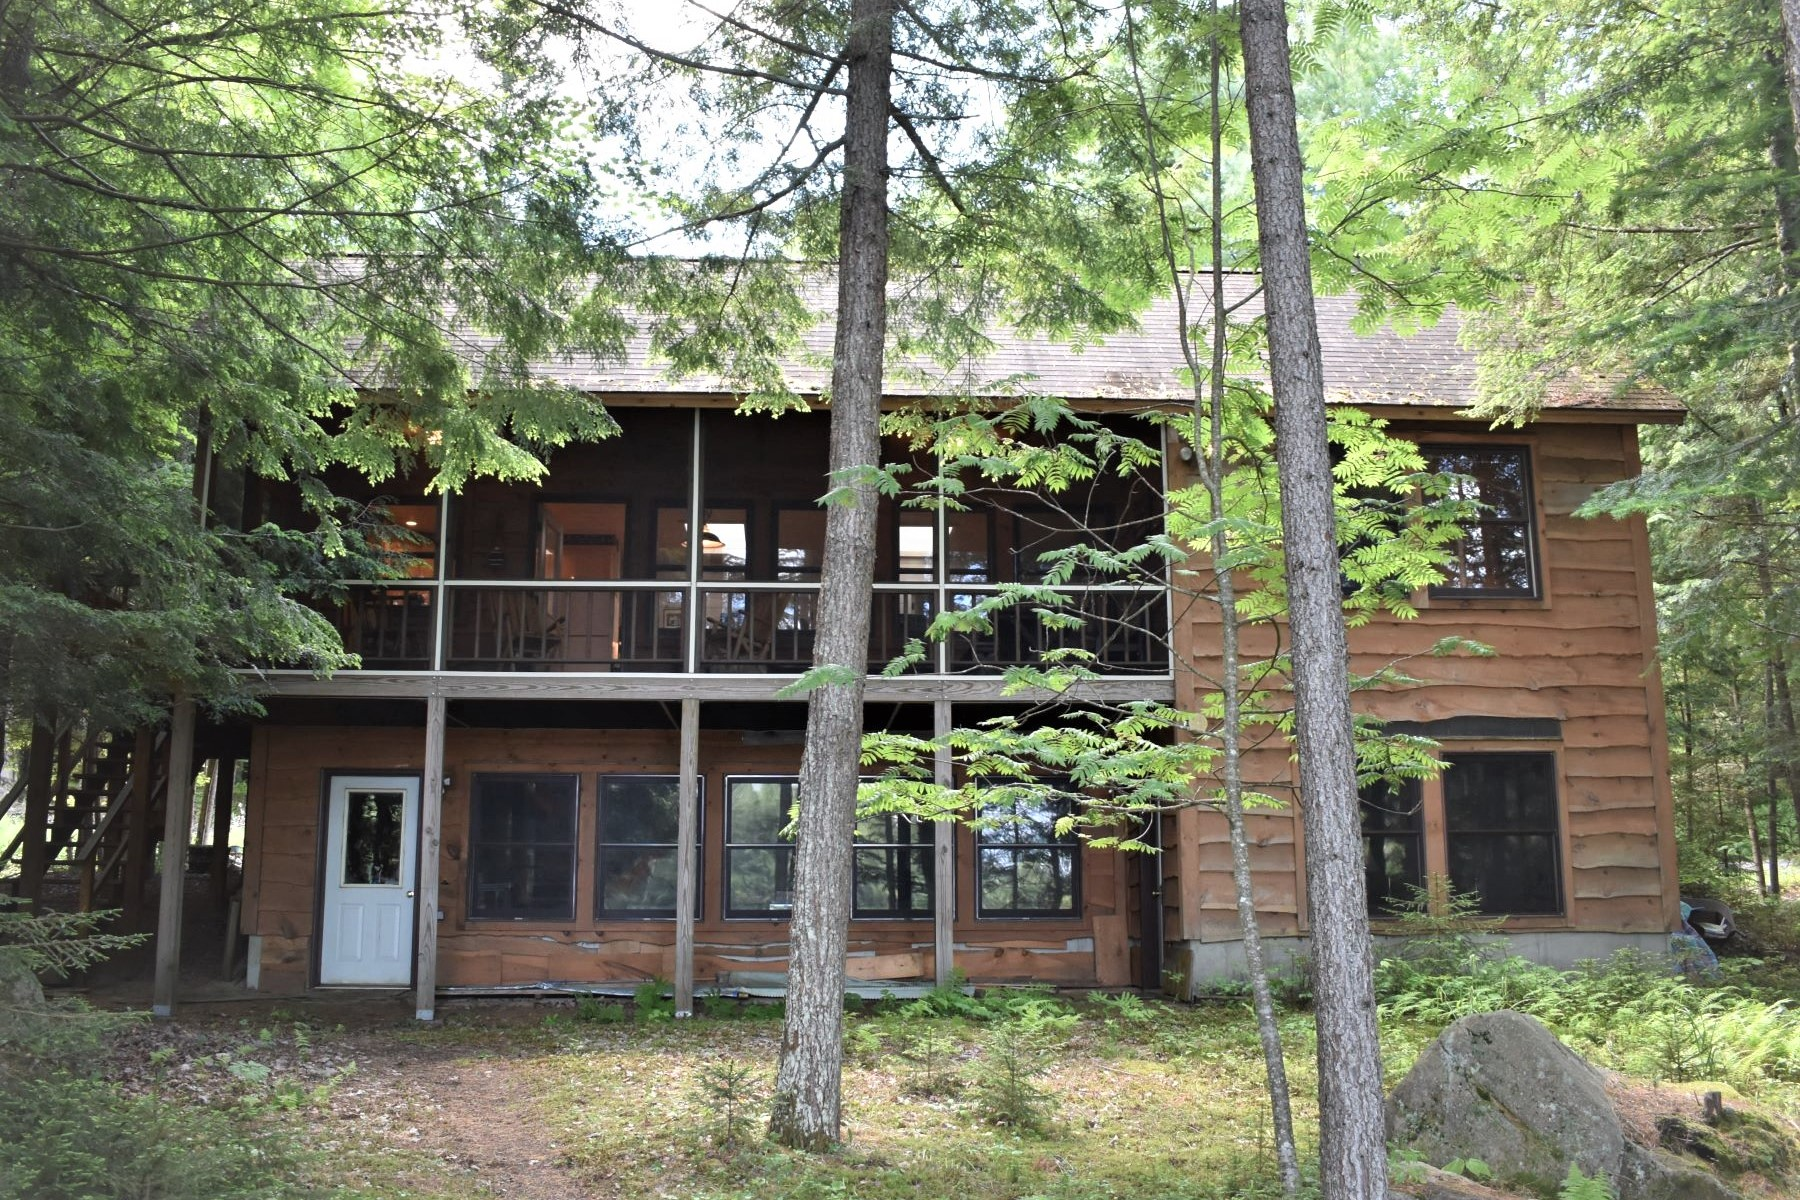 Single Family Homes for Active at Charming Lake Eaton Cabin 156 Beecher Park Way Long Lake, New York 12847 United States